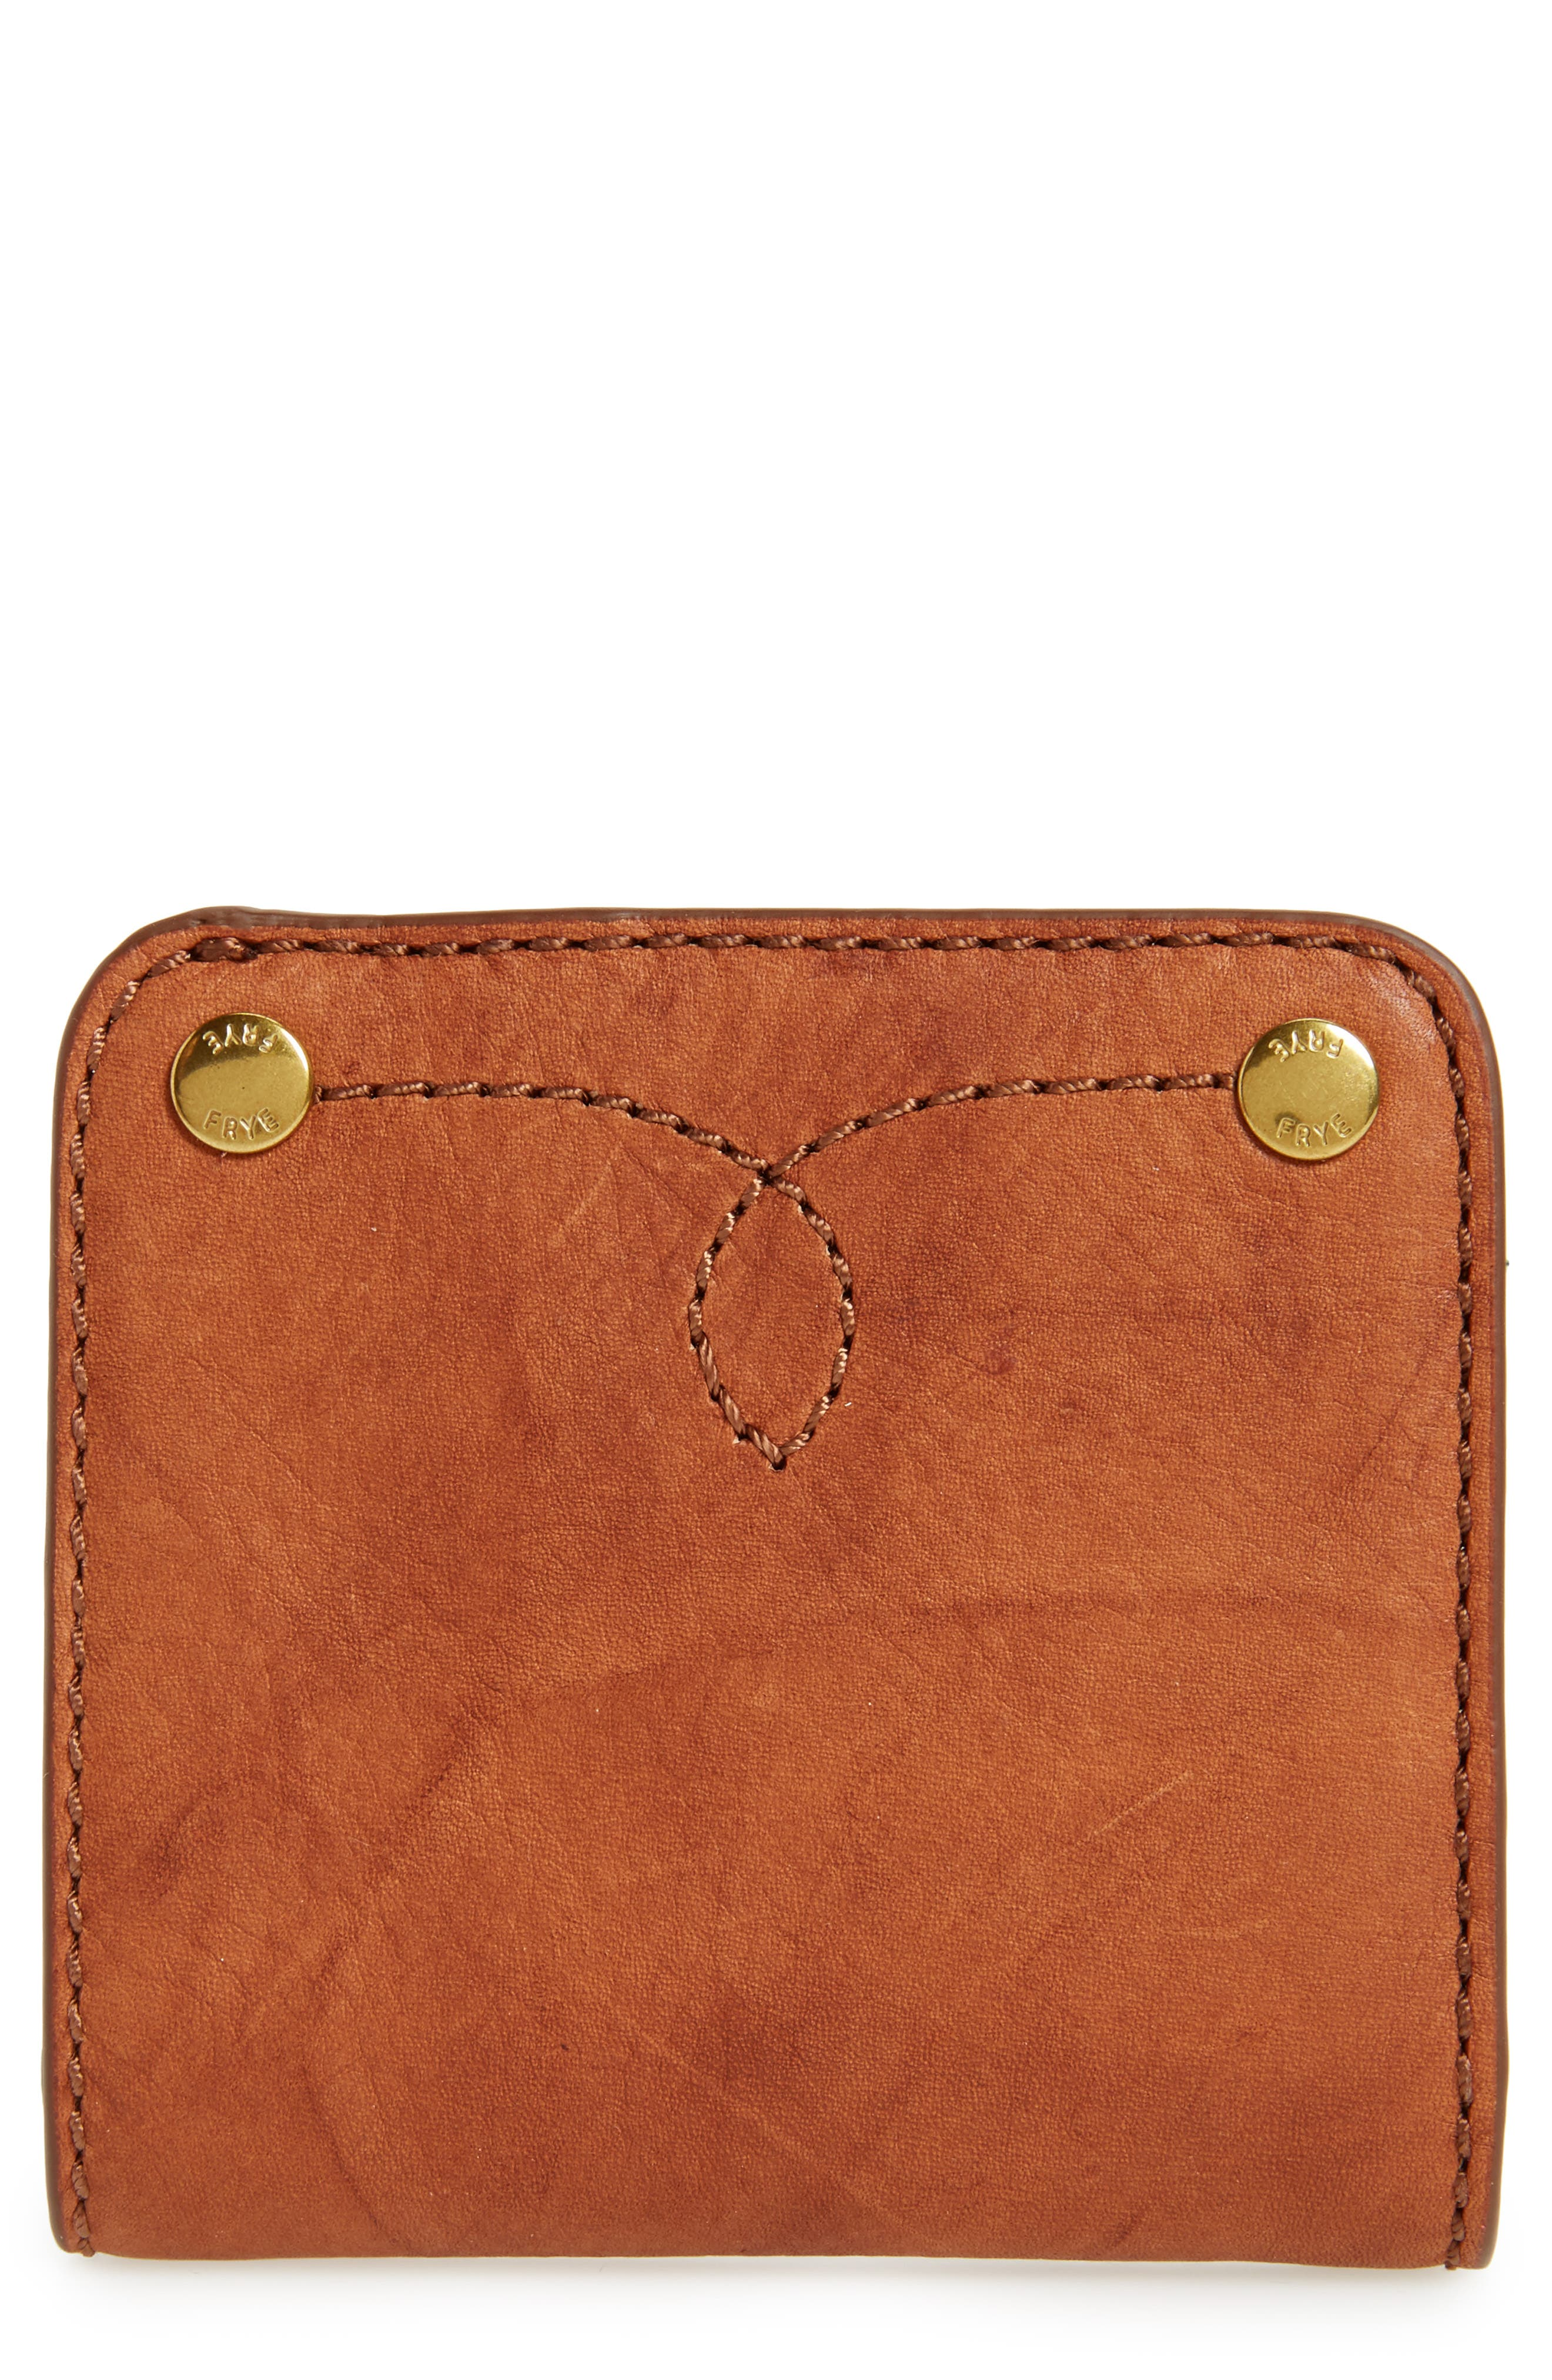 Main Image - Frye Small Campus Rivet Leather Wallet